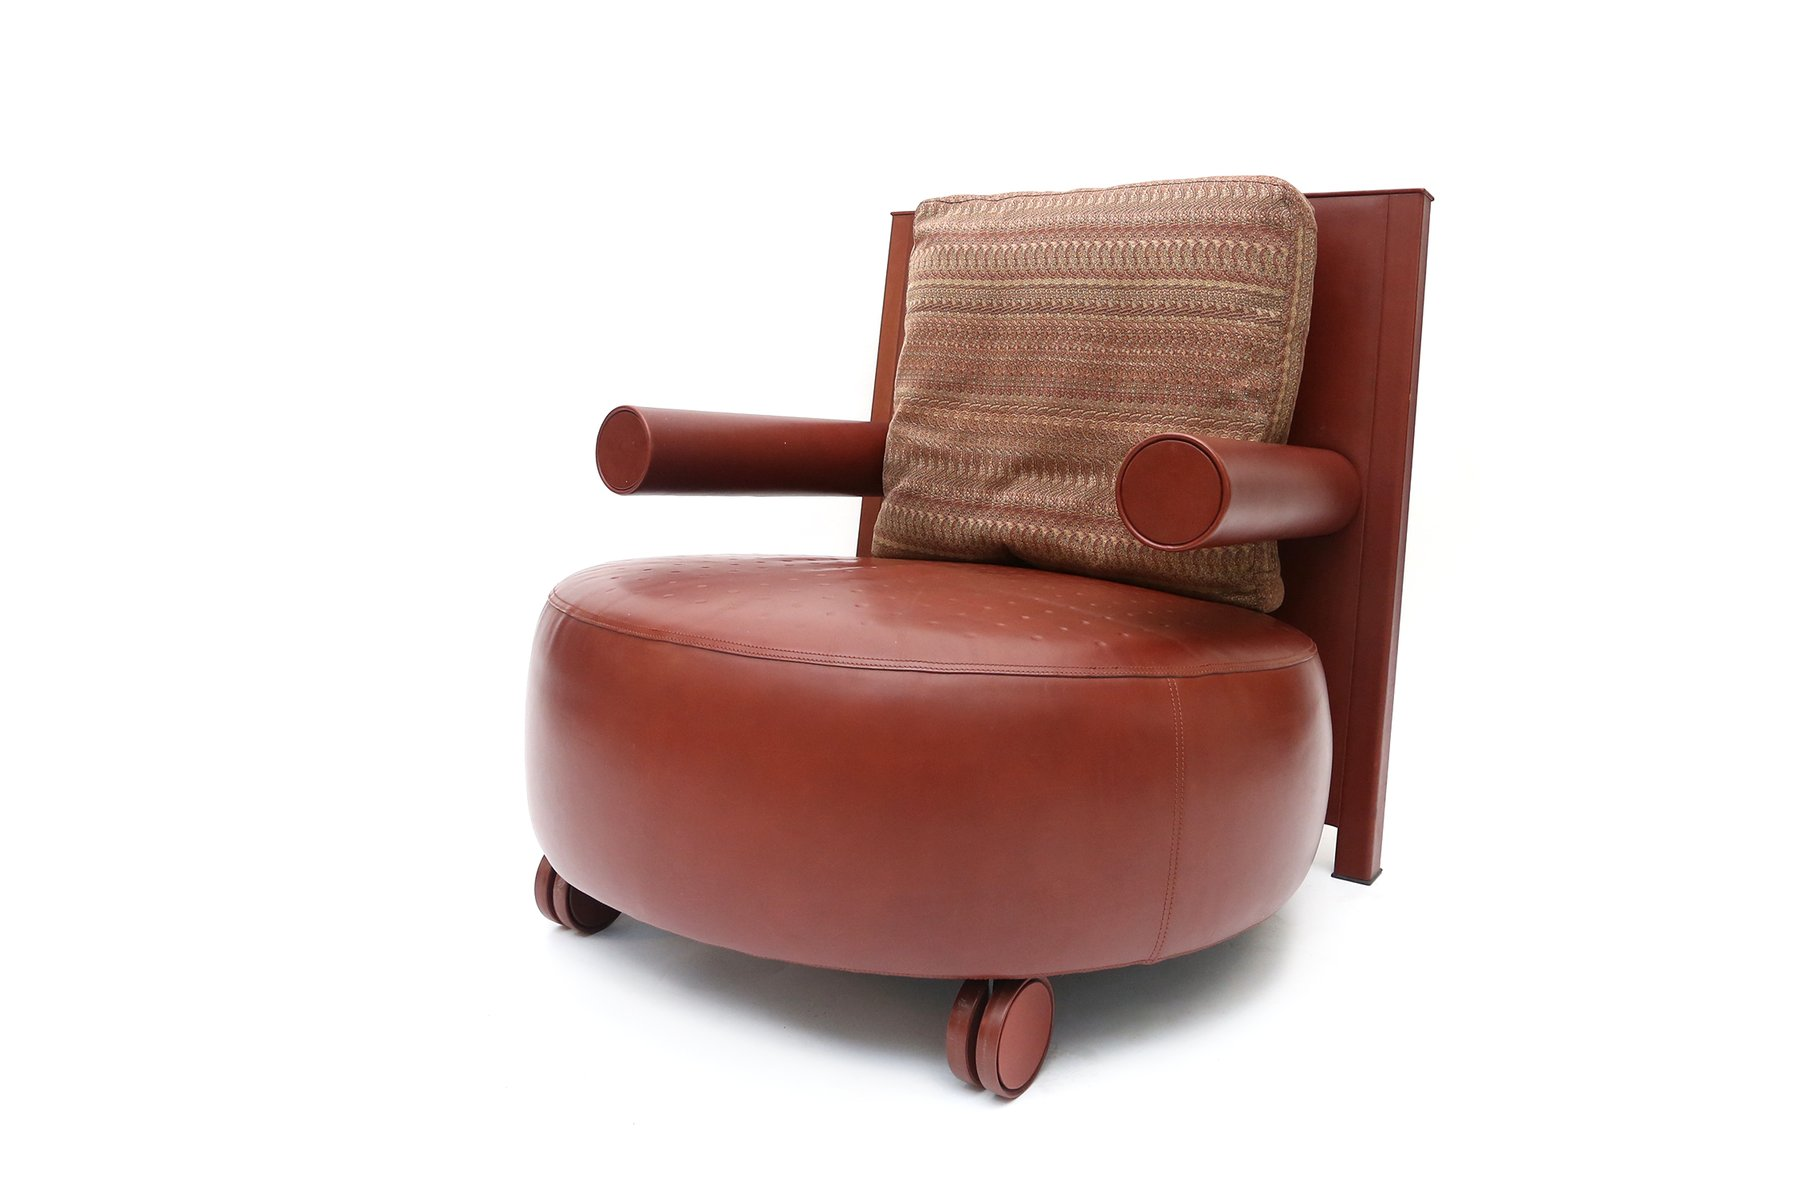 Exceptional Vintage Armchair By Antonio Citterio For Bu0026B Italia